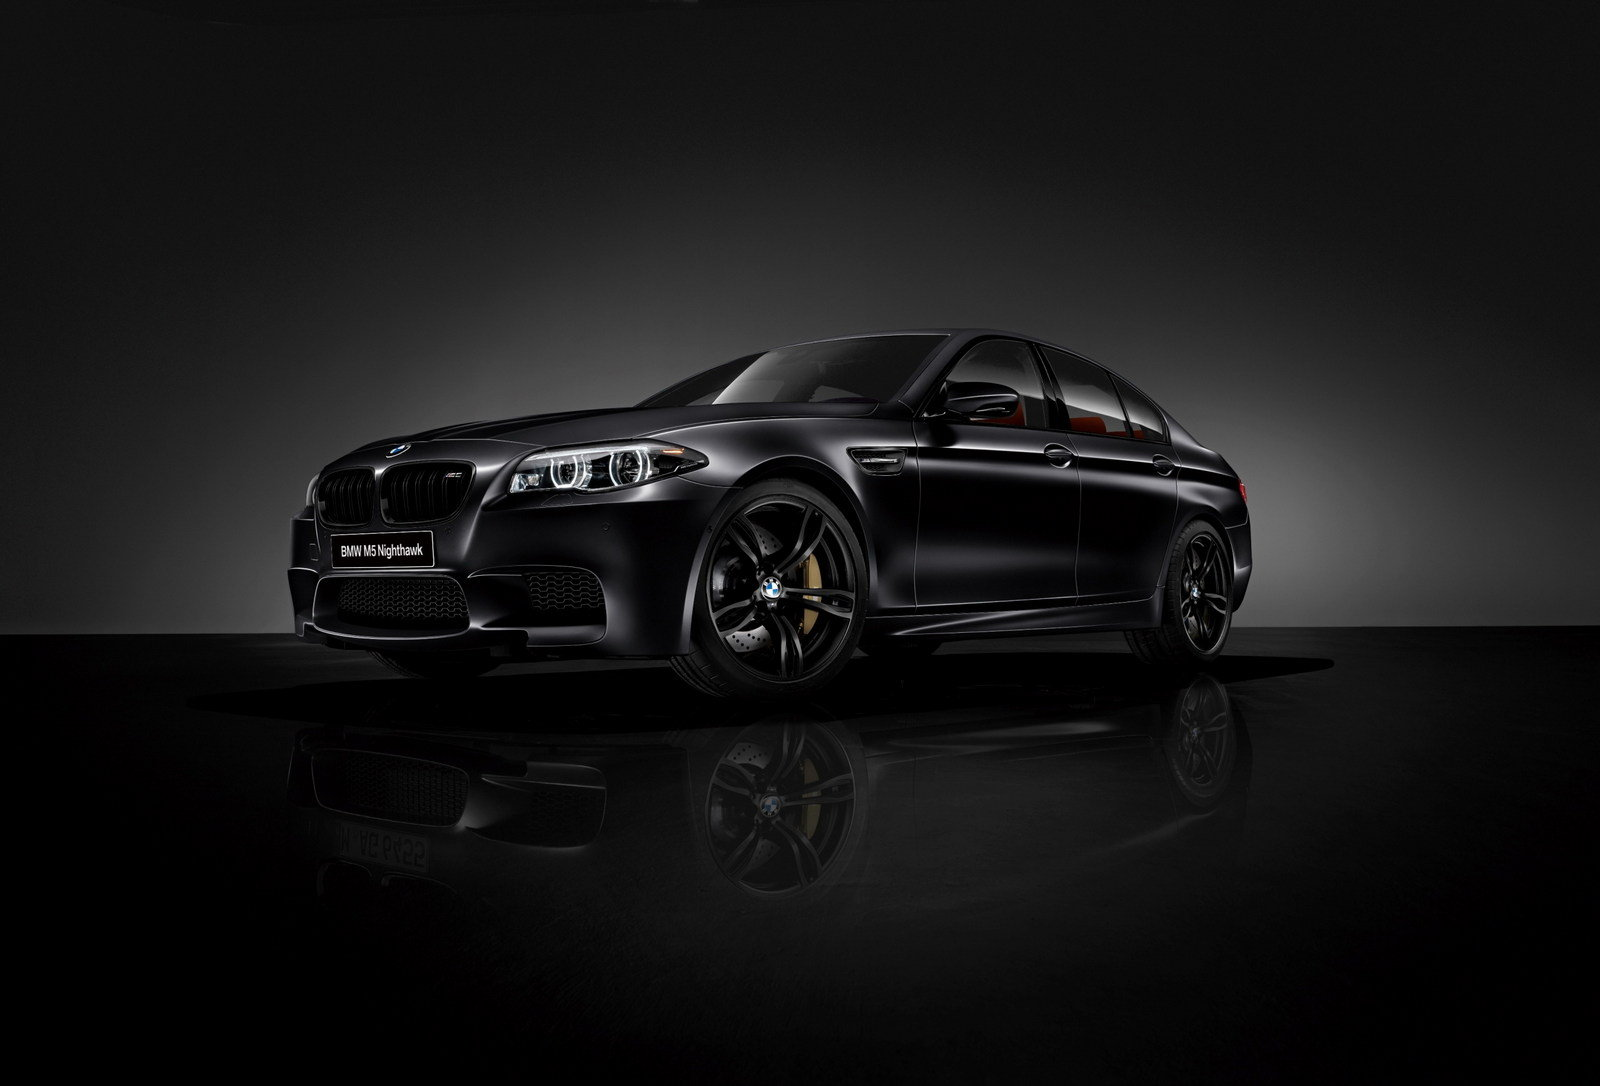 2013 bmw m5 nighthawk edition review top speed. Black Bedroom Furniture Sets. Home Design Ideas